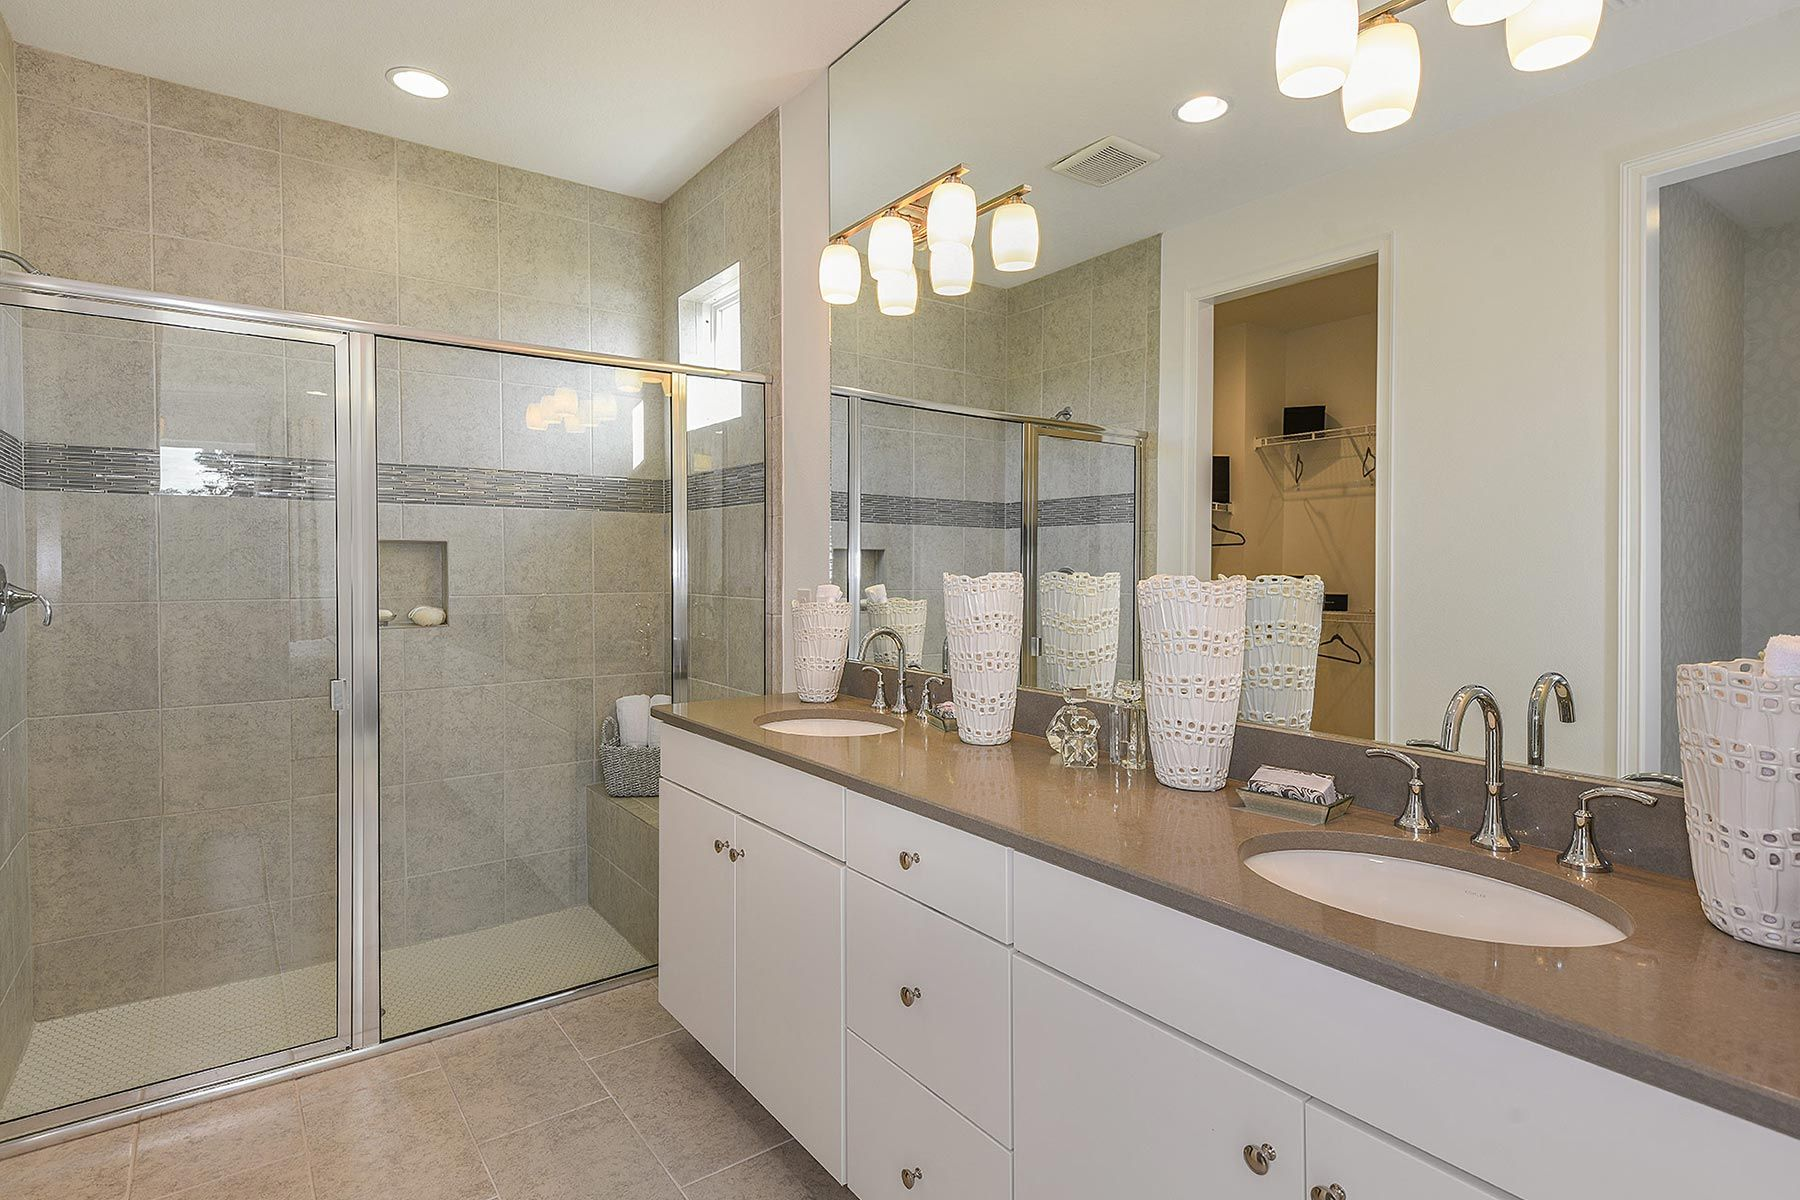 Bathroom featured in the Seascape By Mattamy Homes in Sarasota-Bradenton, FL